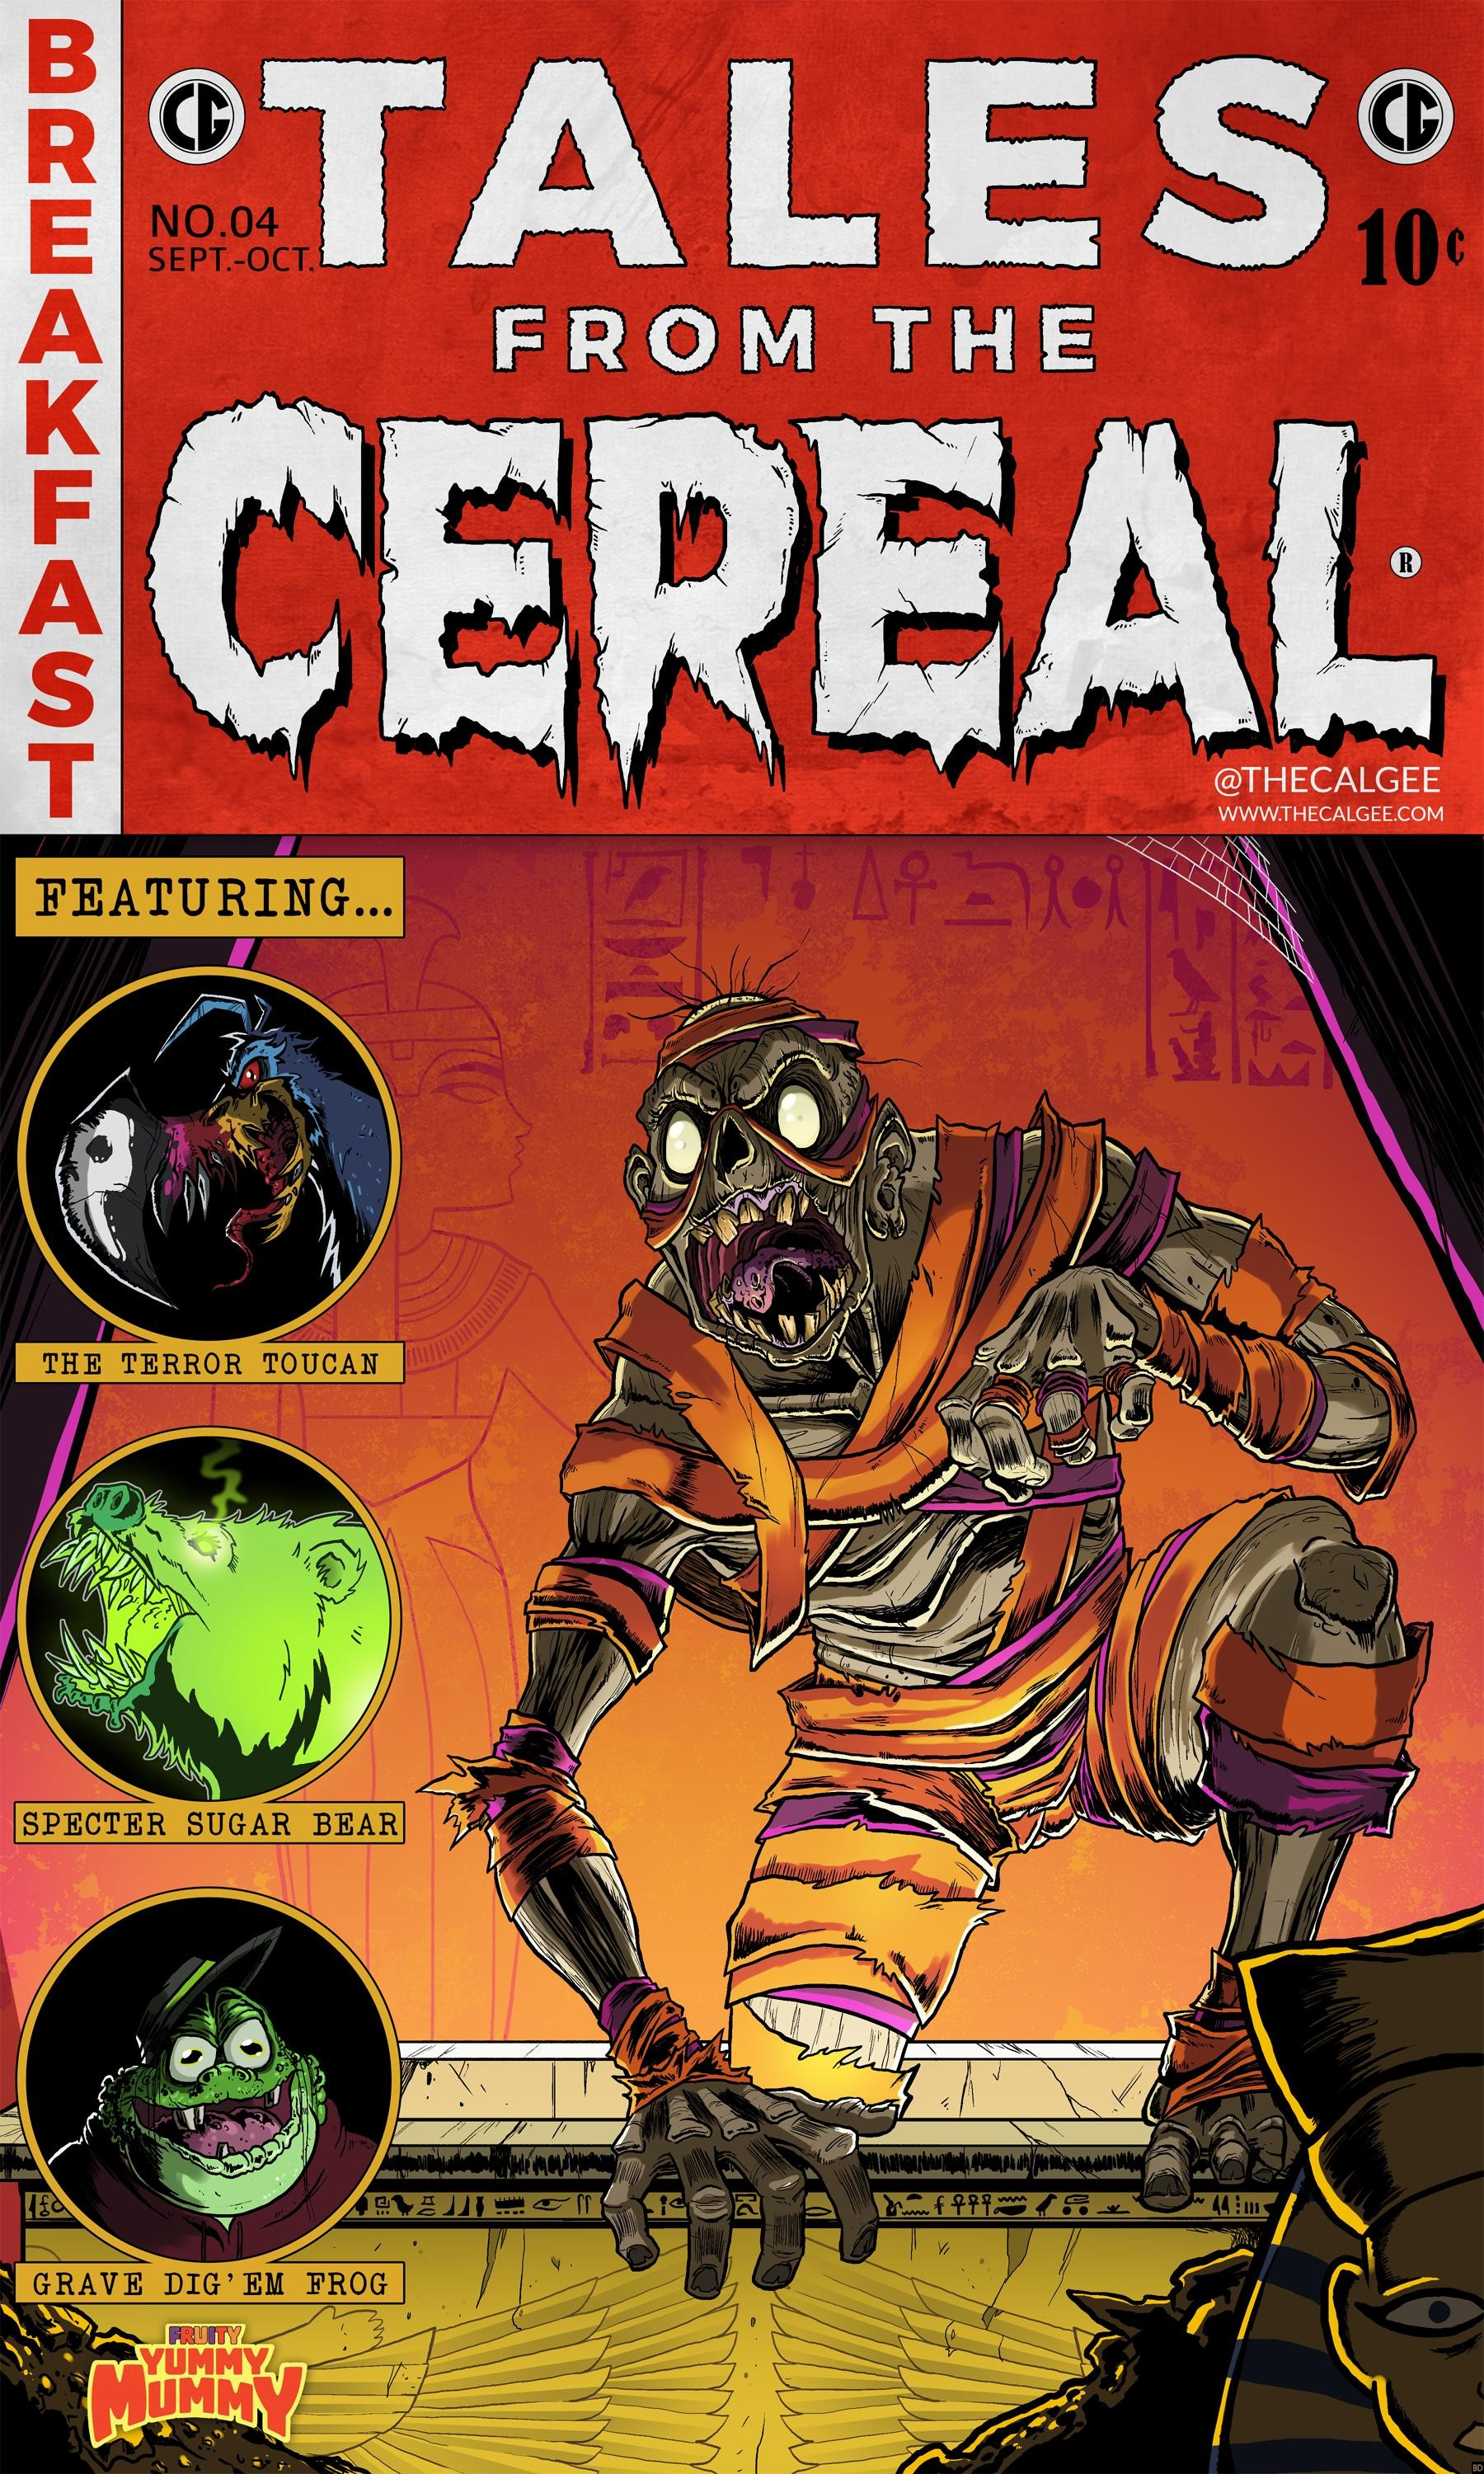 Book Cover Art Styles : Artist turns cereal monsters into tales from the crypt